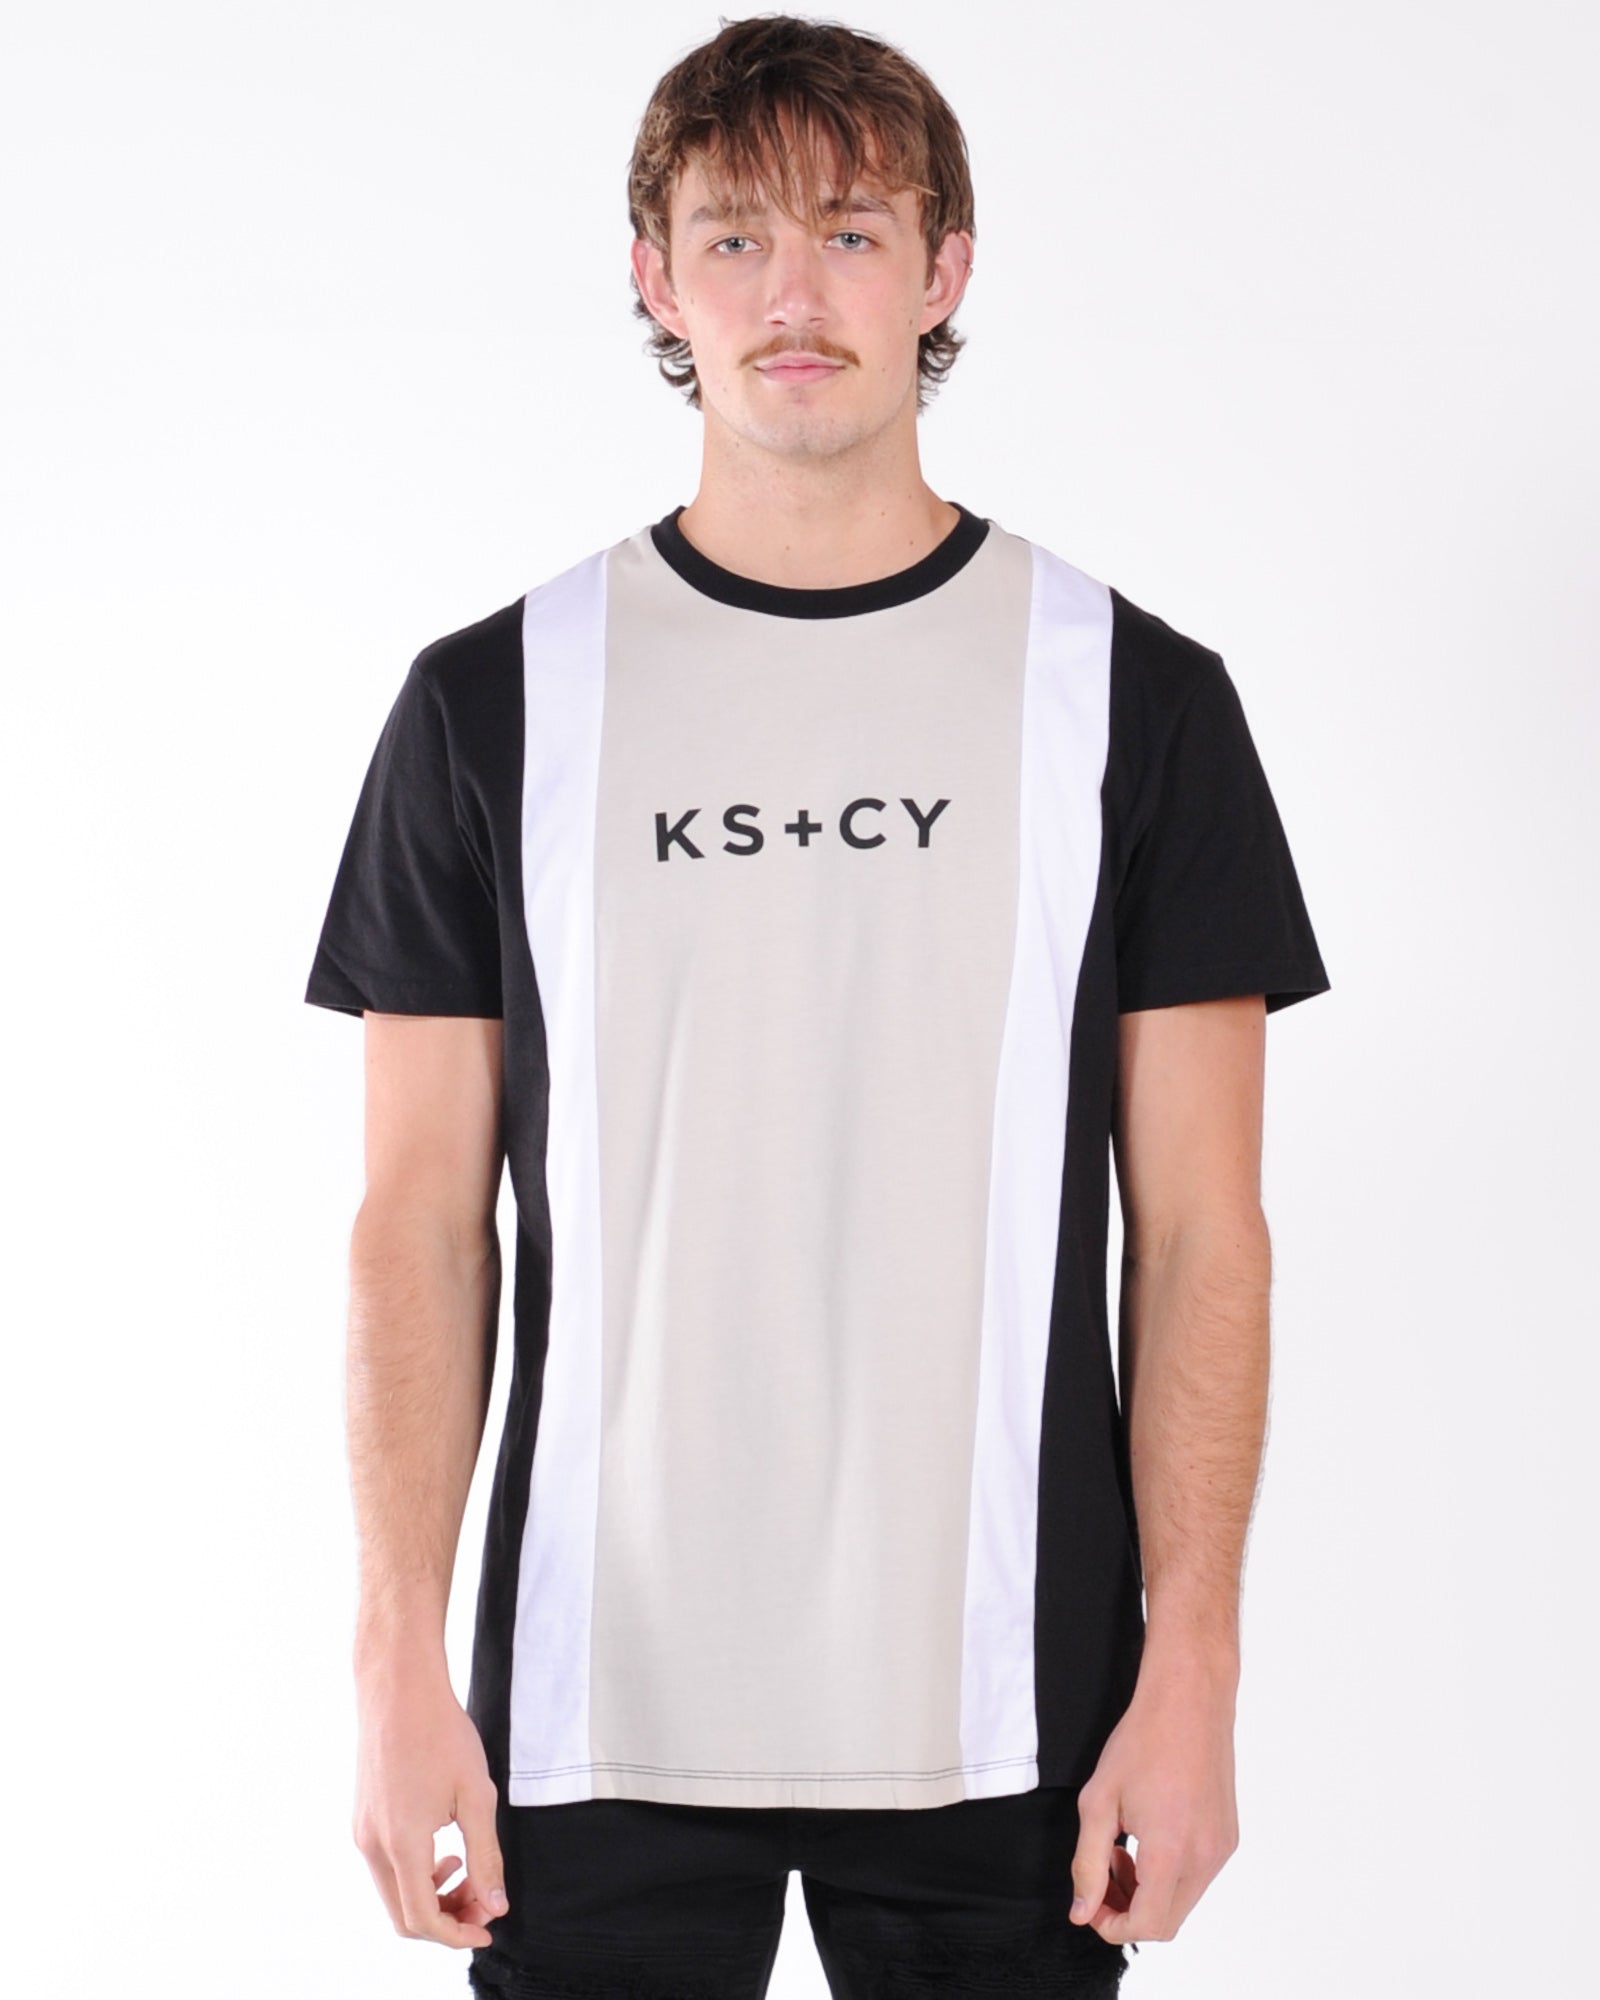 Kiss Chacey Malone Relaxed Tee - Black/White/Stone